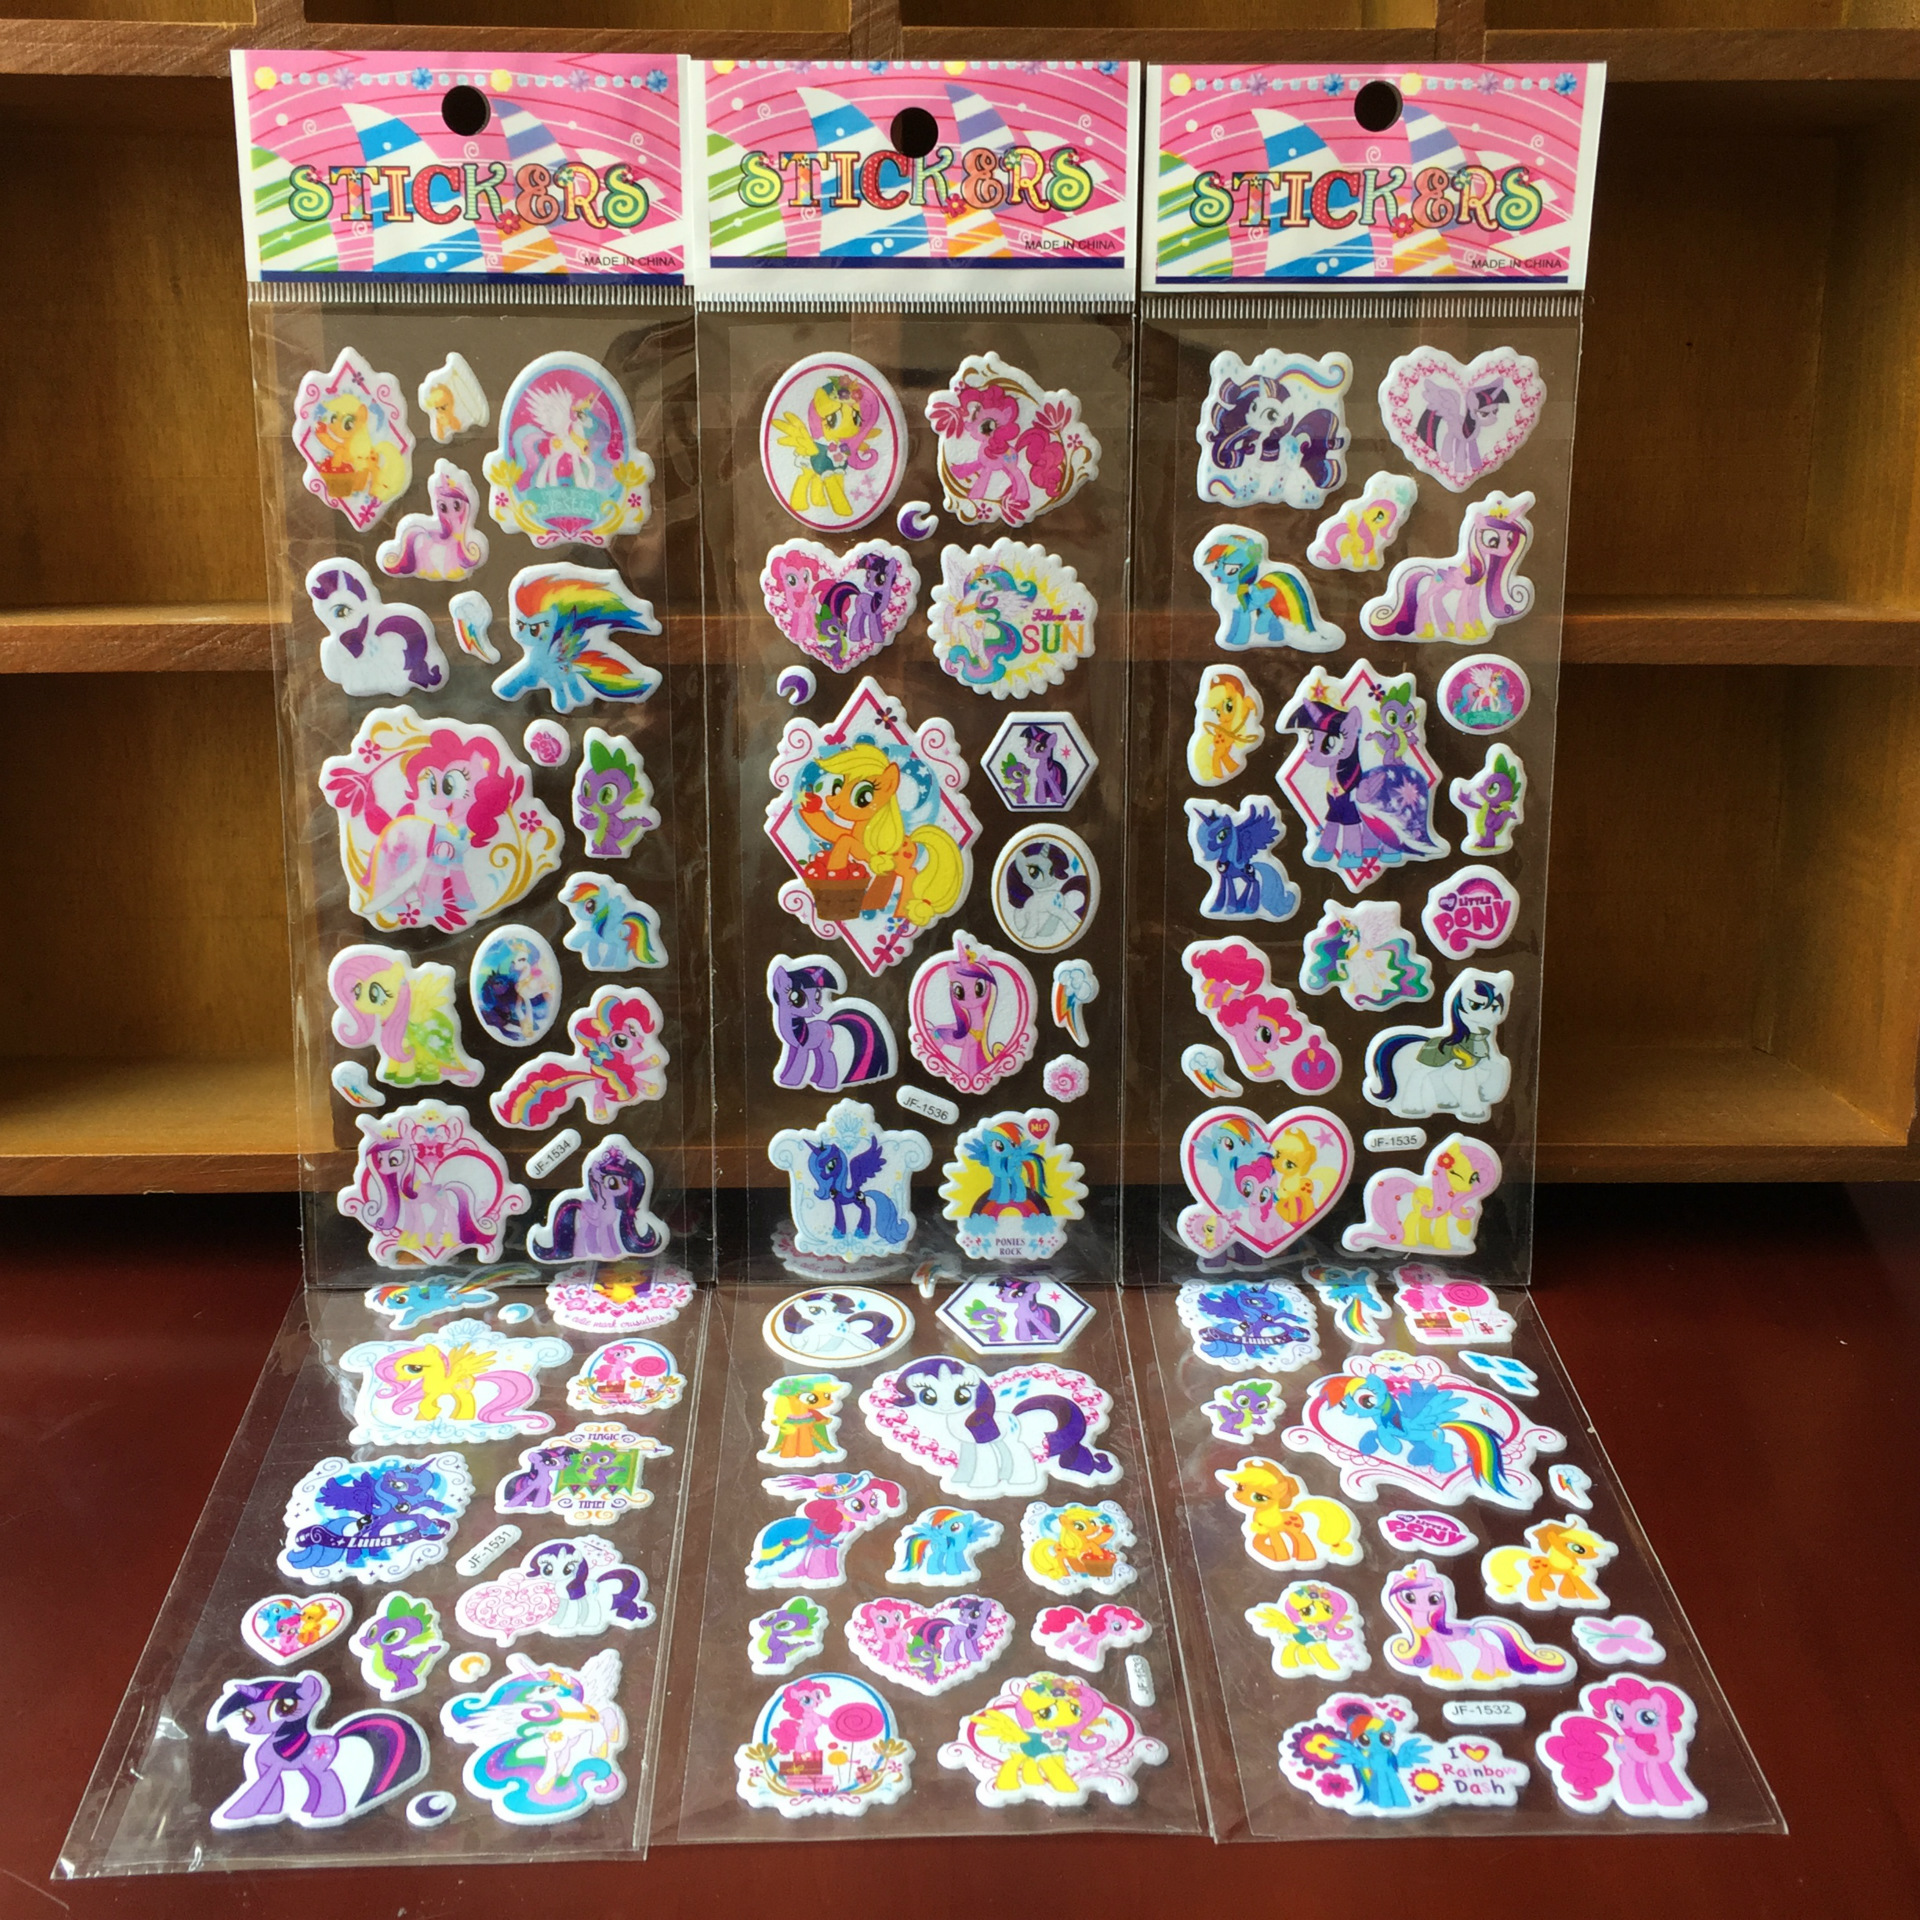 6pcs/lot Bubble Stickers Cartoon Sticker Party Favors For Kids Cute DIY Craft Scrapbook Stickers Child's Gift Little Pony